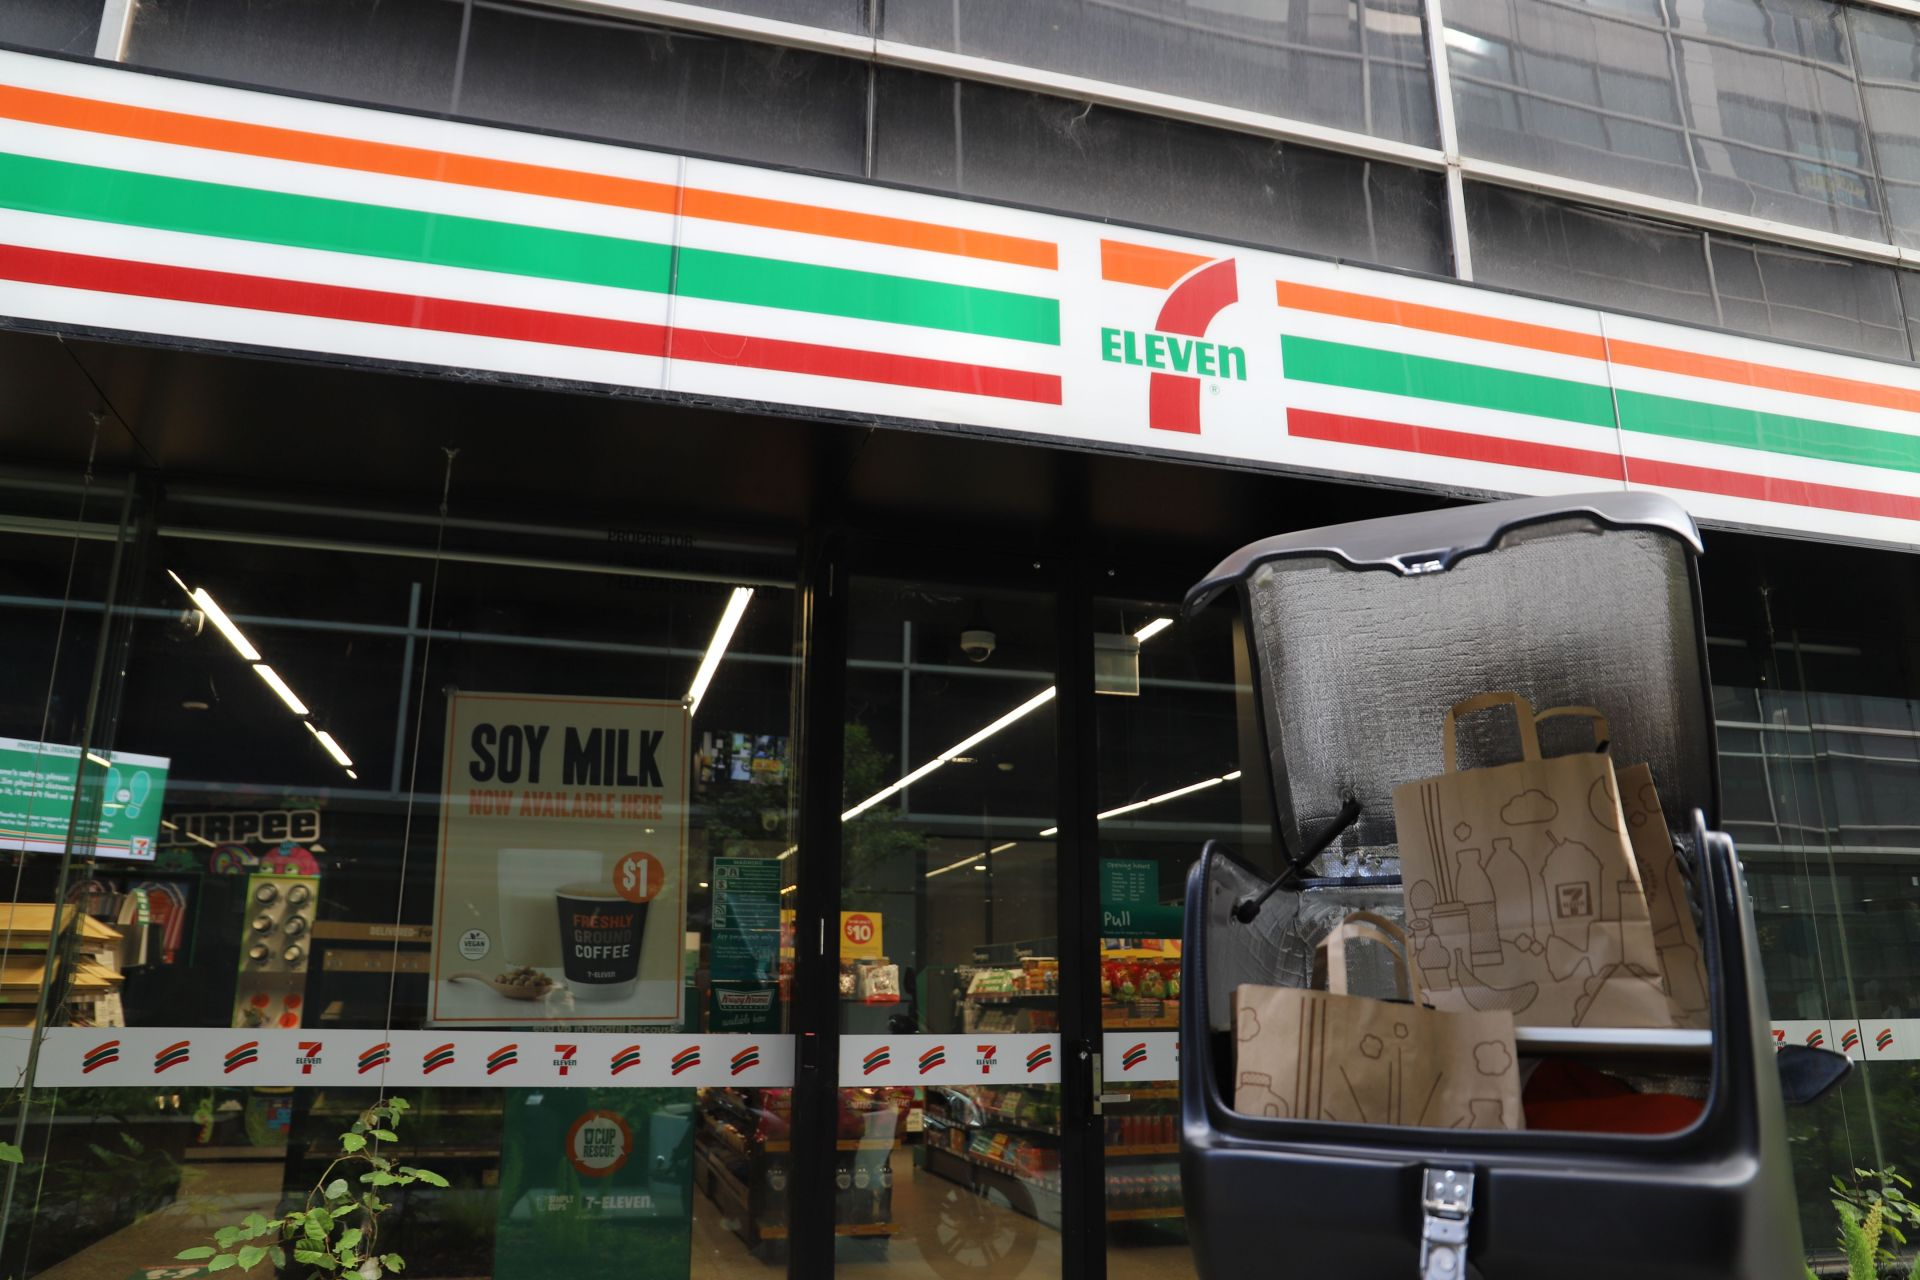 7-Eleven launches home delivery service | Inside Franchise Business